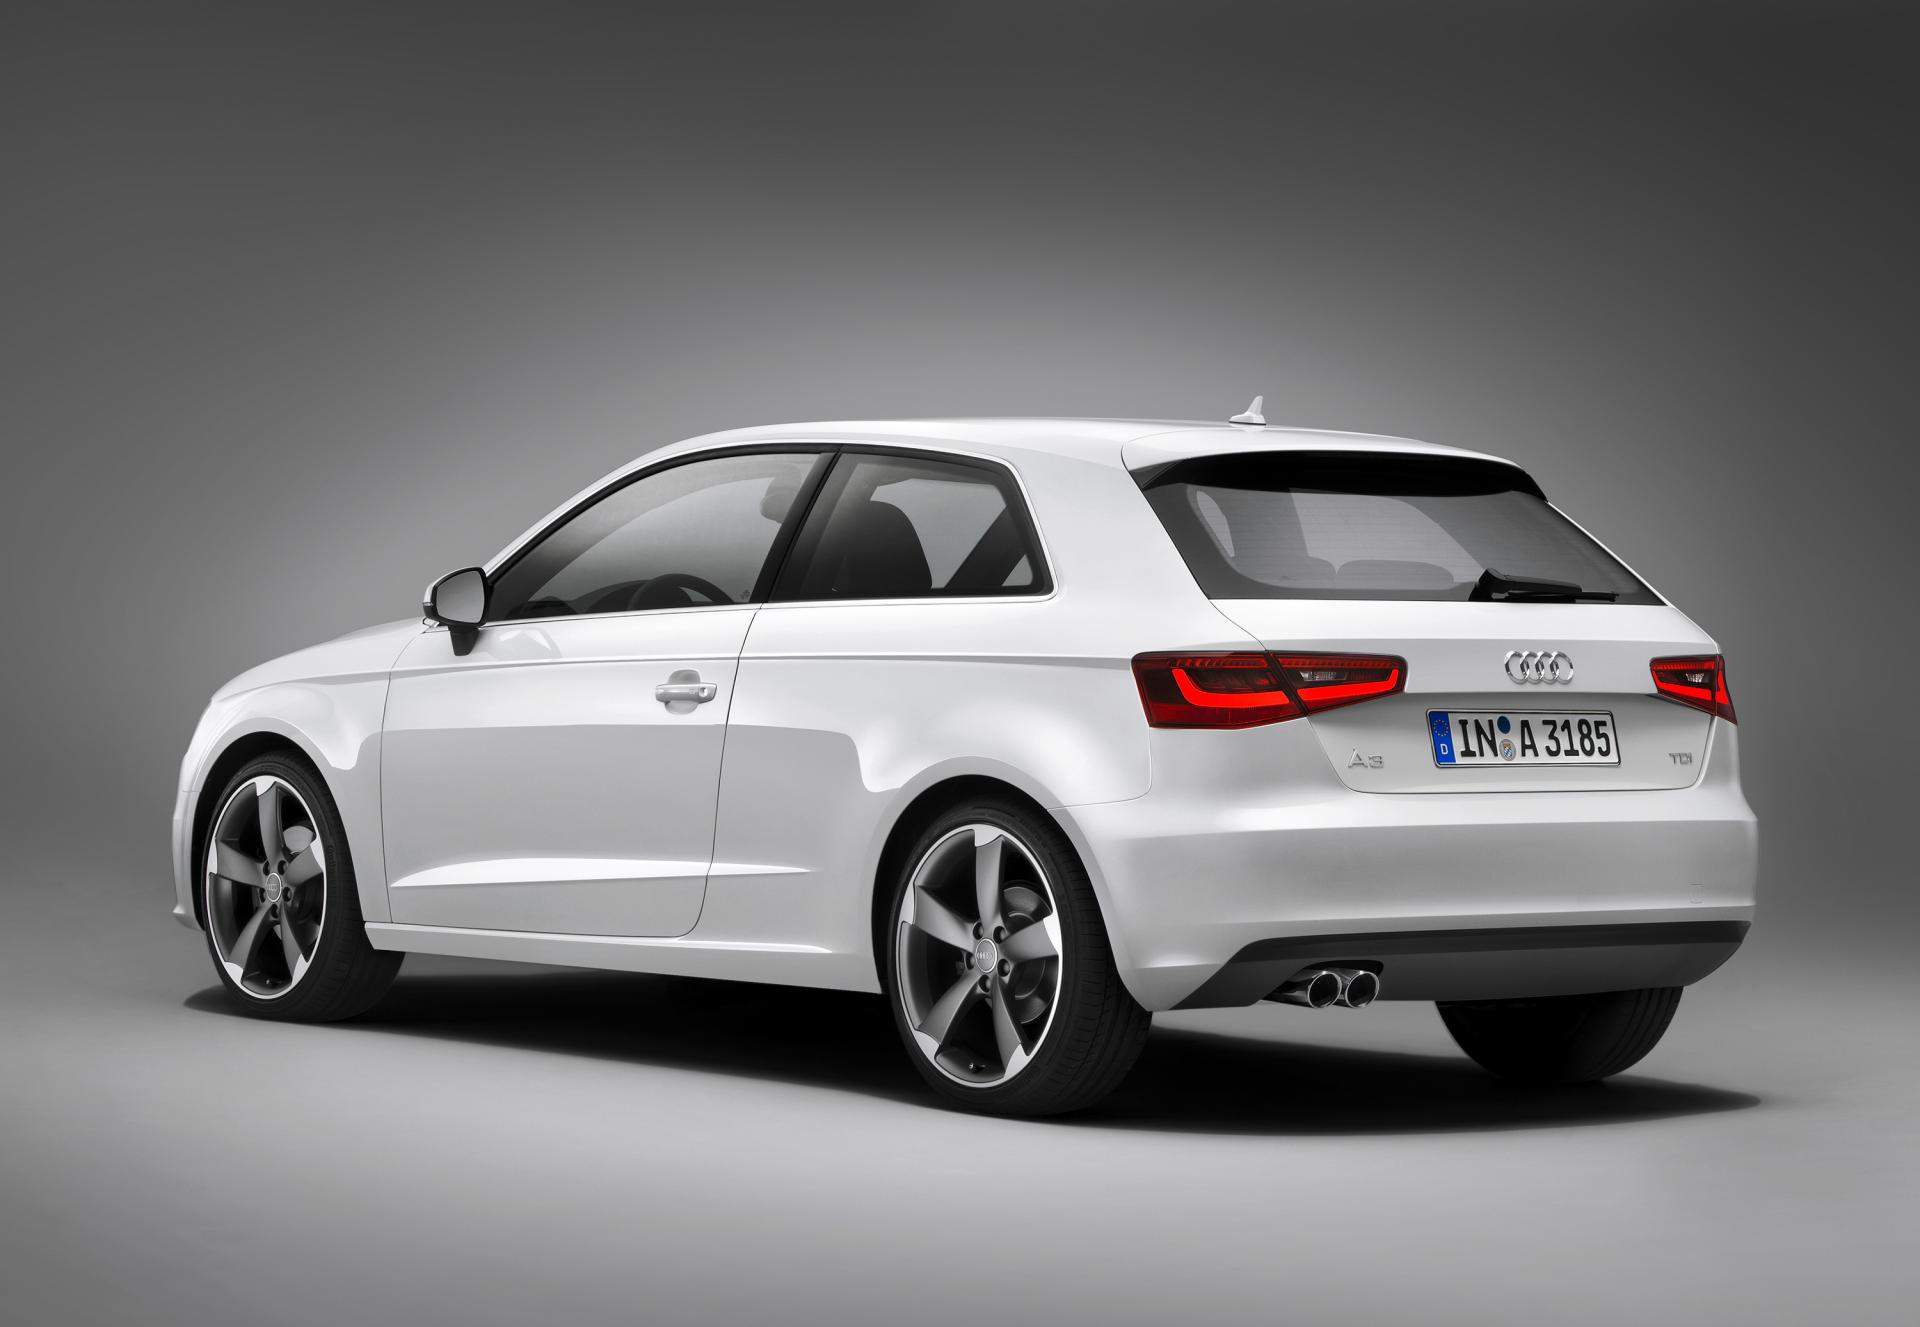 2013 audi a3 images photo 2013 audi a3 hatchback coupe. Black Bedroom Furniture Sets. Home Design Ideas